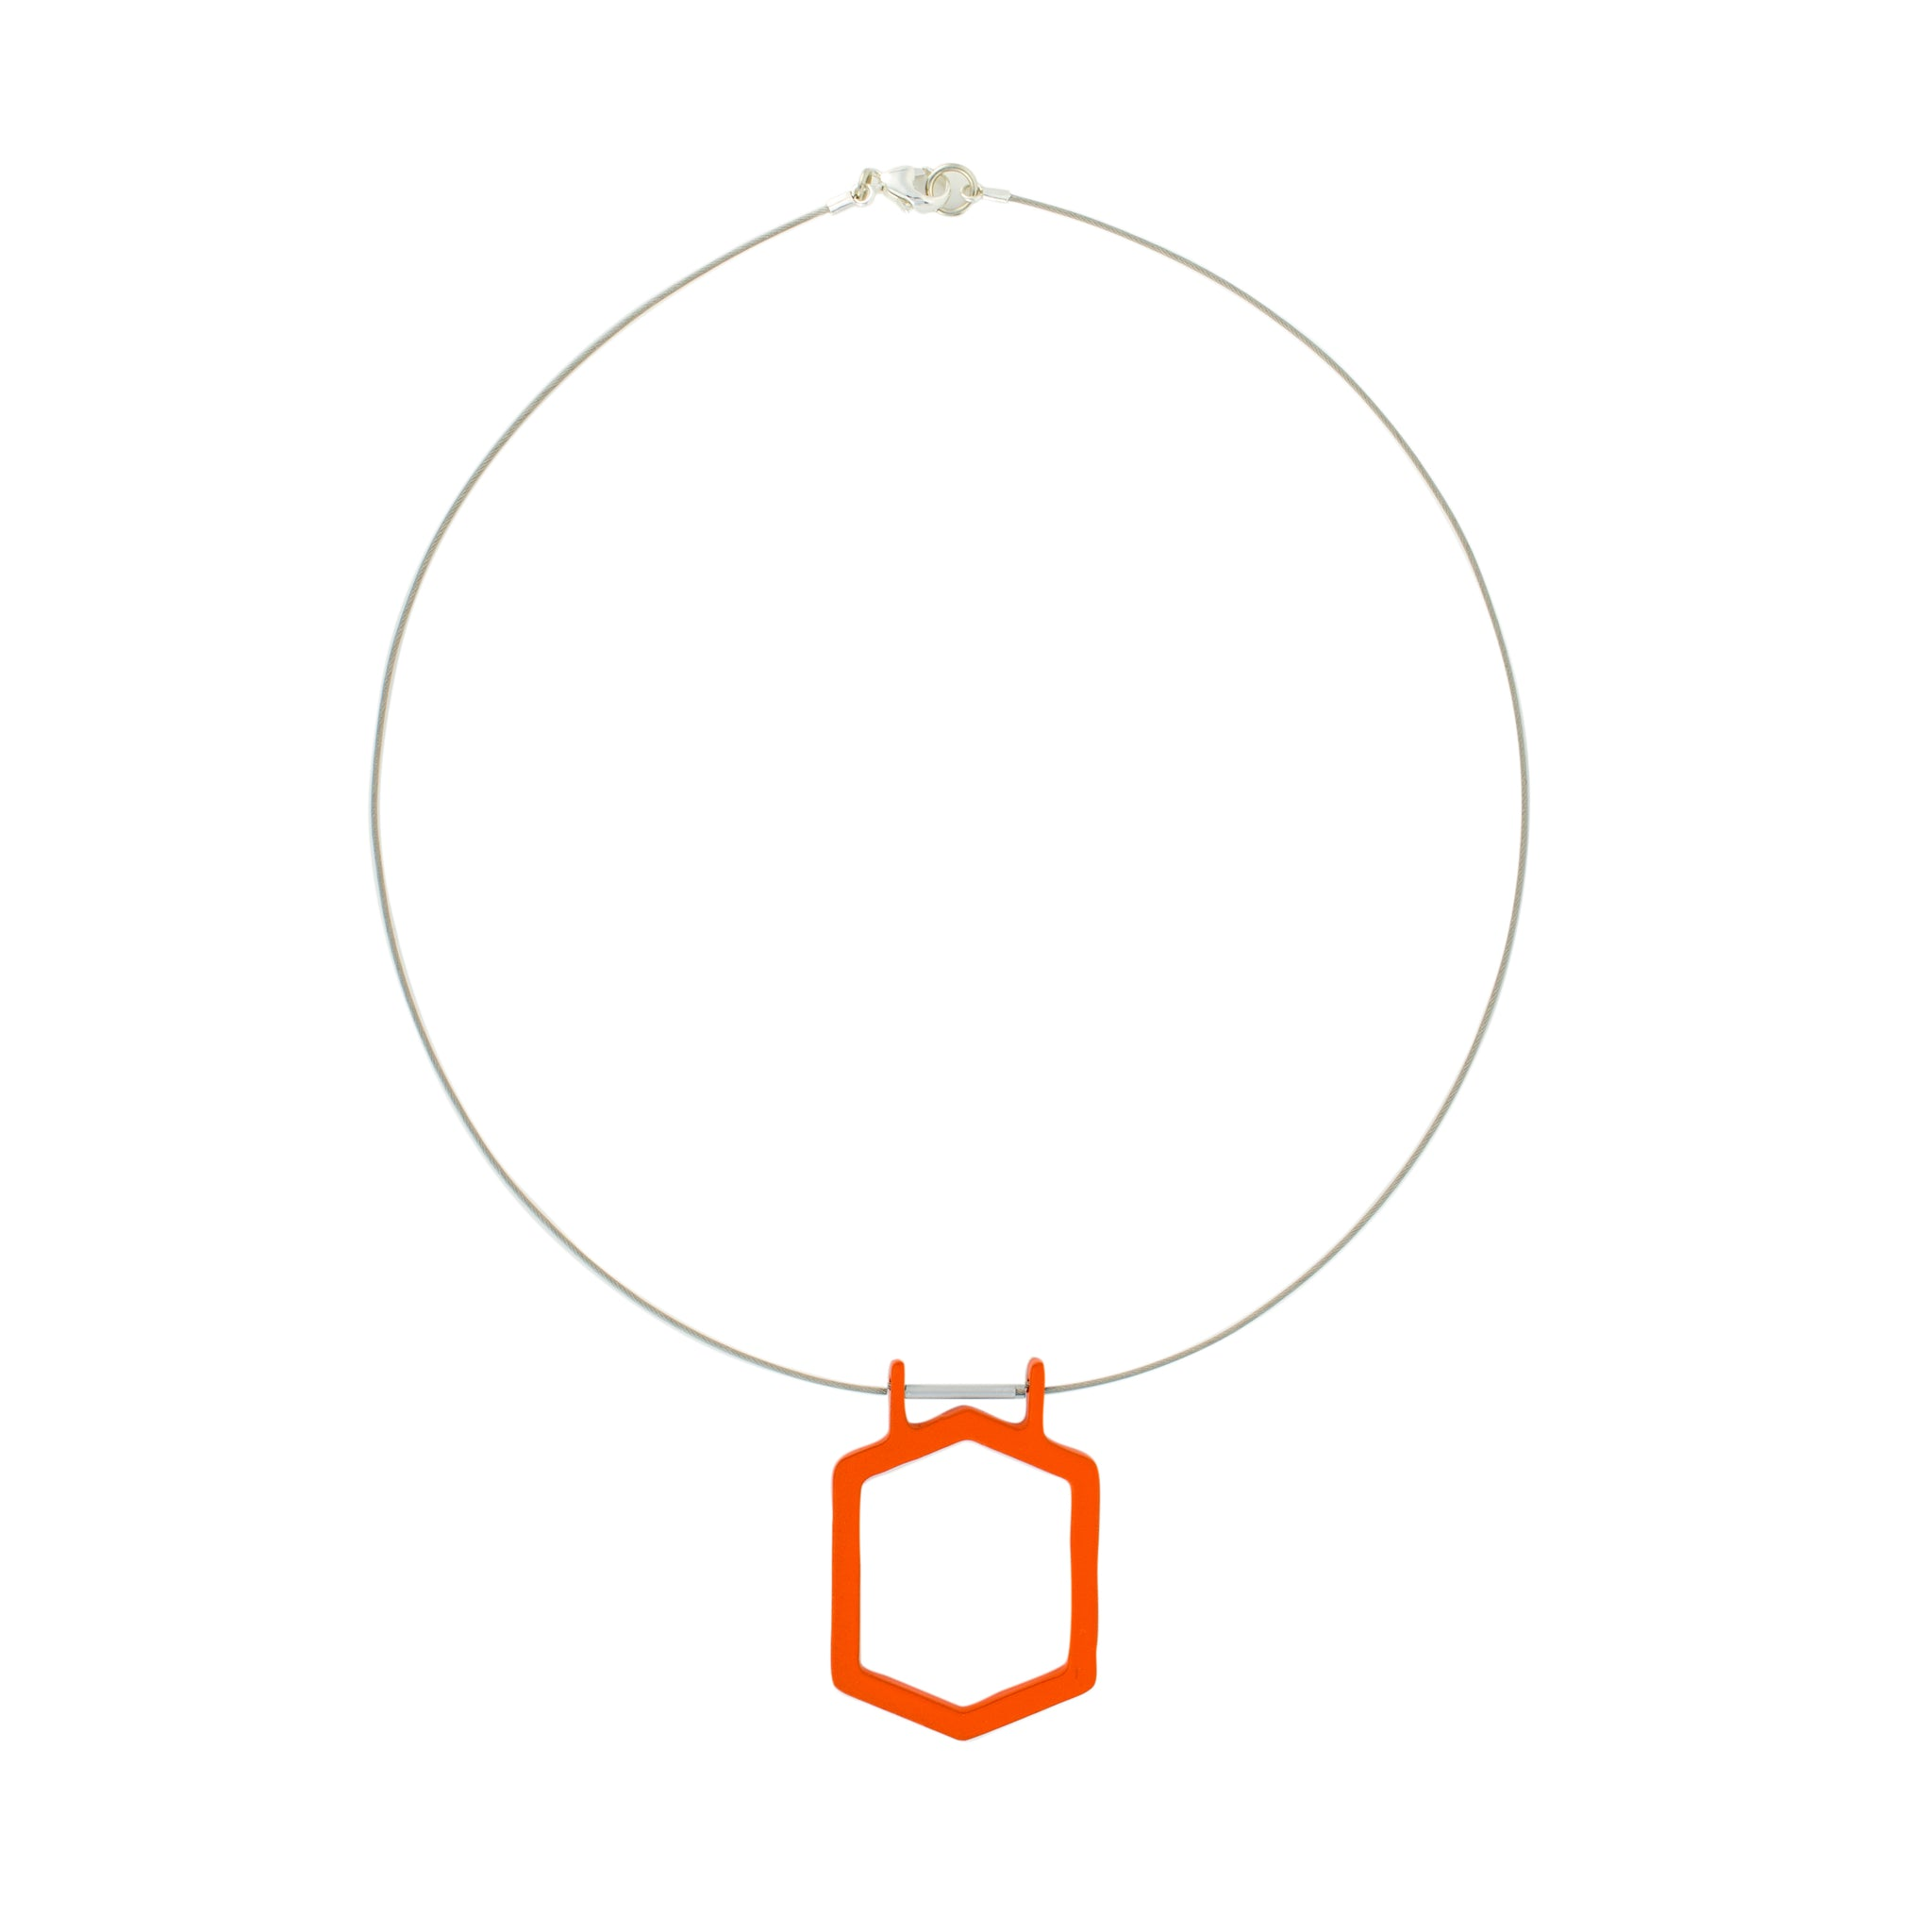 Vibrant_Orange - WITHIN x COMMON GROUND Necklace Flat View